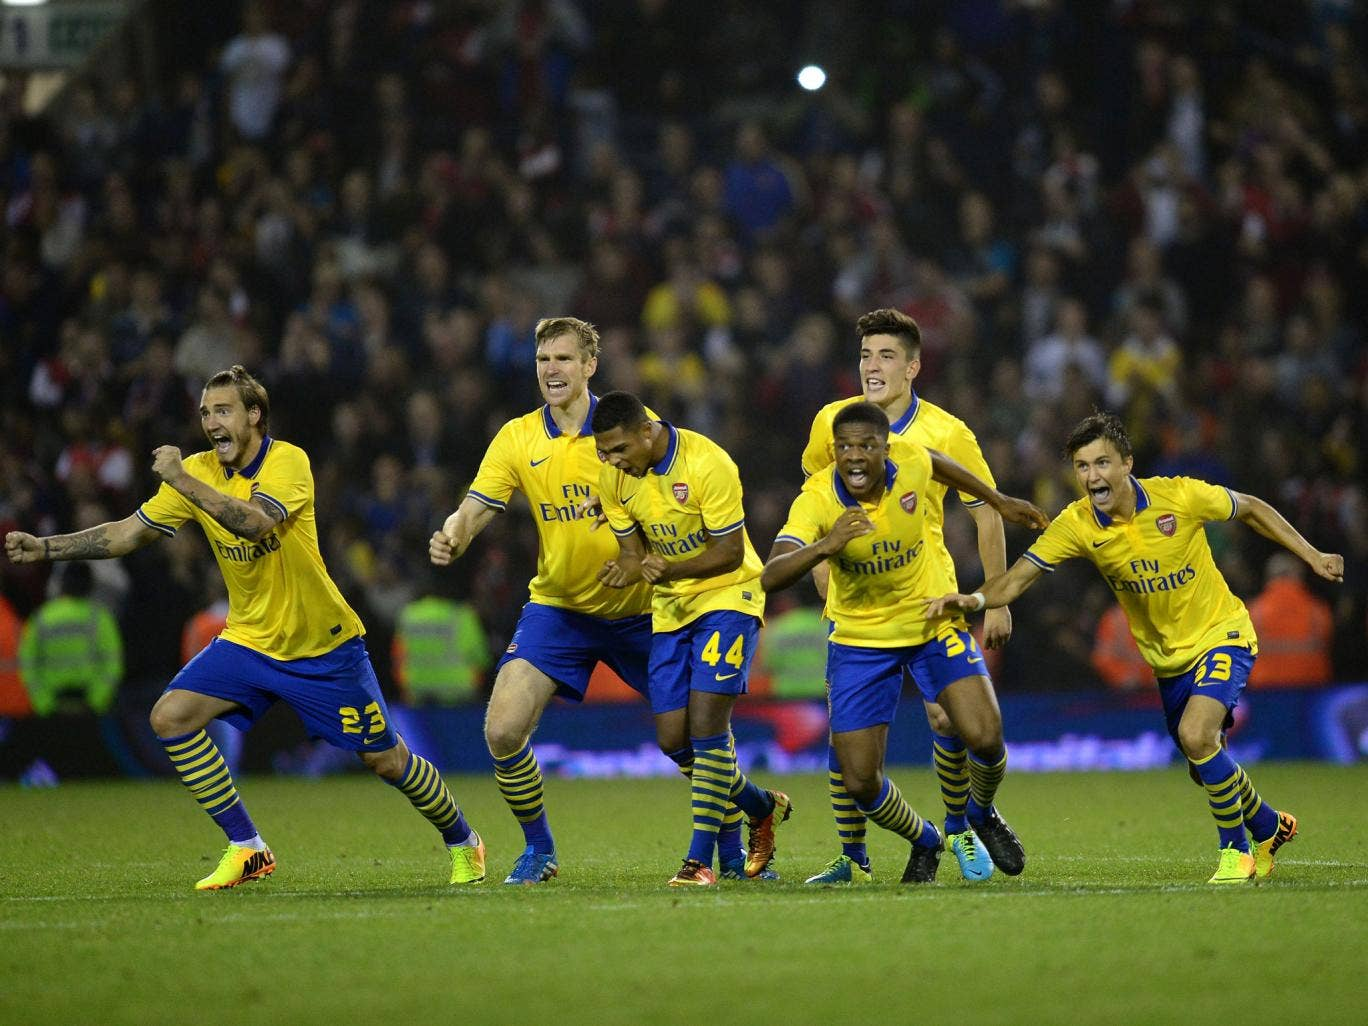 Arsenal's young side celebrate their penalties win over West Bromwich Albion